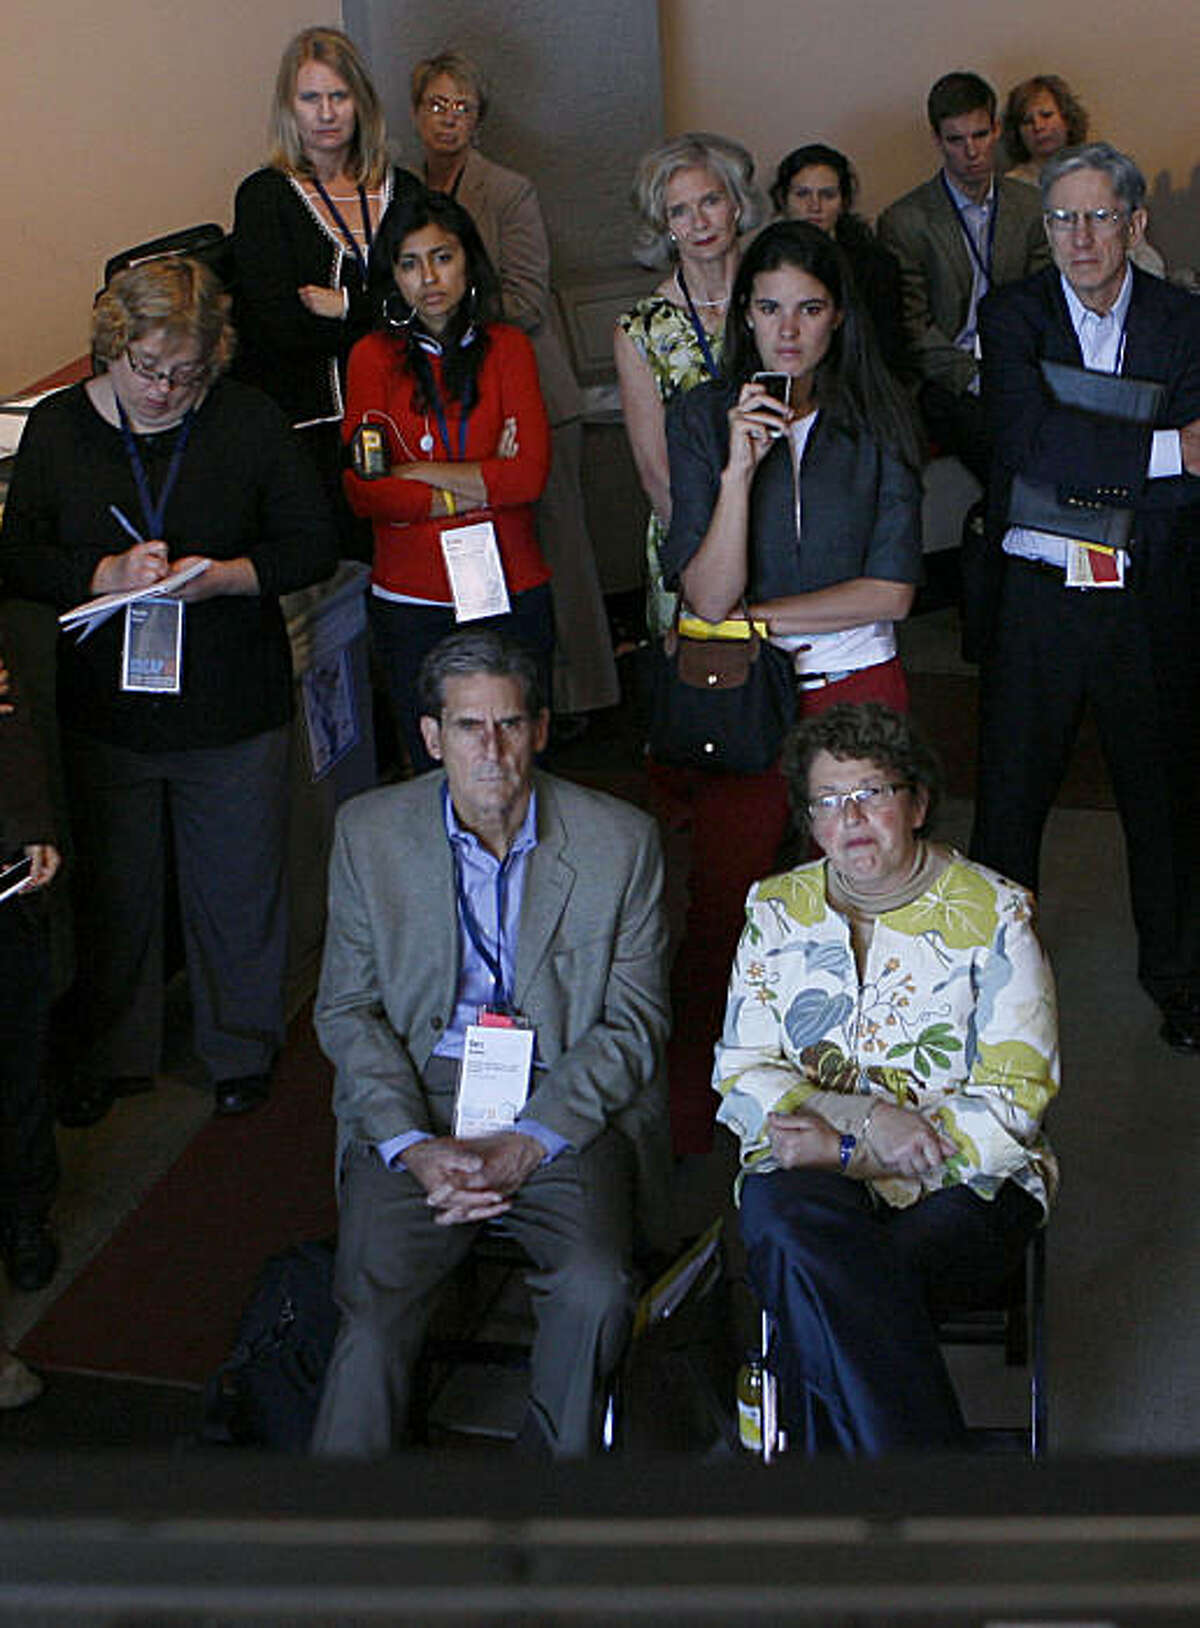 A crowd watches a television outside of Cowell Theater at the Fort Mason Center while a live television feed of Jacqueline Novogratz speaks from inside the theater during the Social Capital Markets 2010 conference (SOCAP 10) in San Francisco, Calif., on Monday, Oct. 4, 2010.